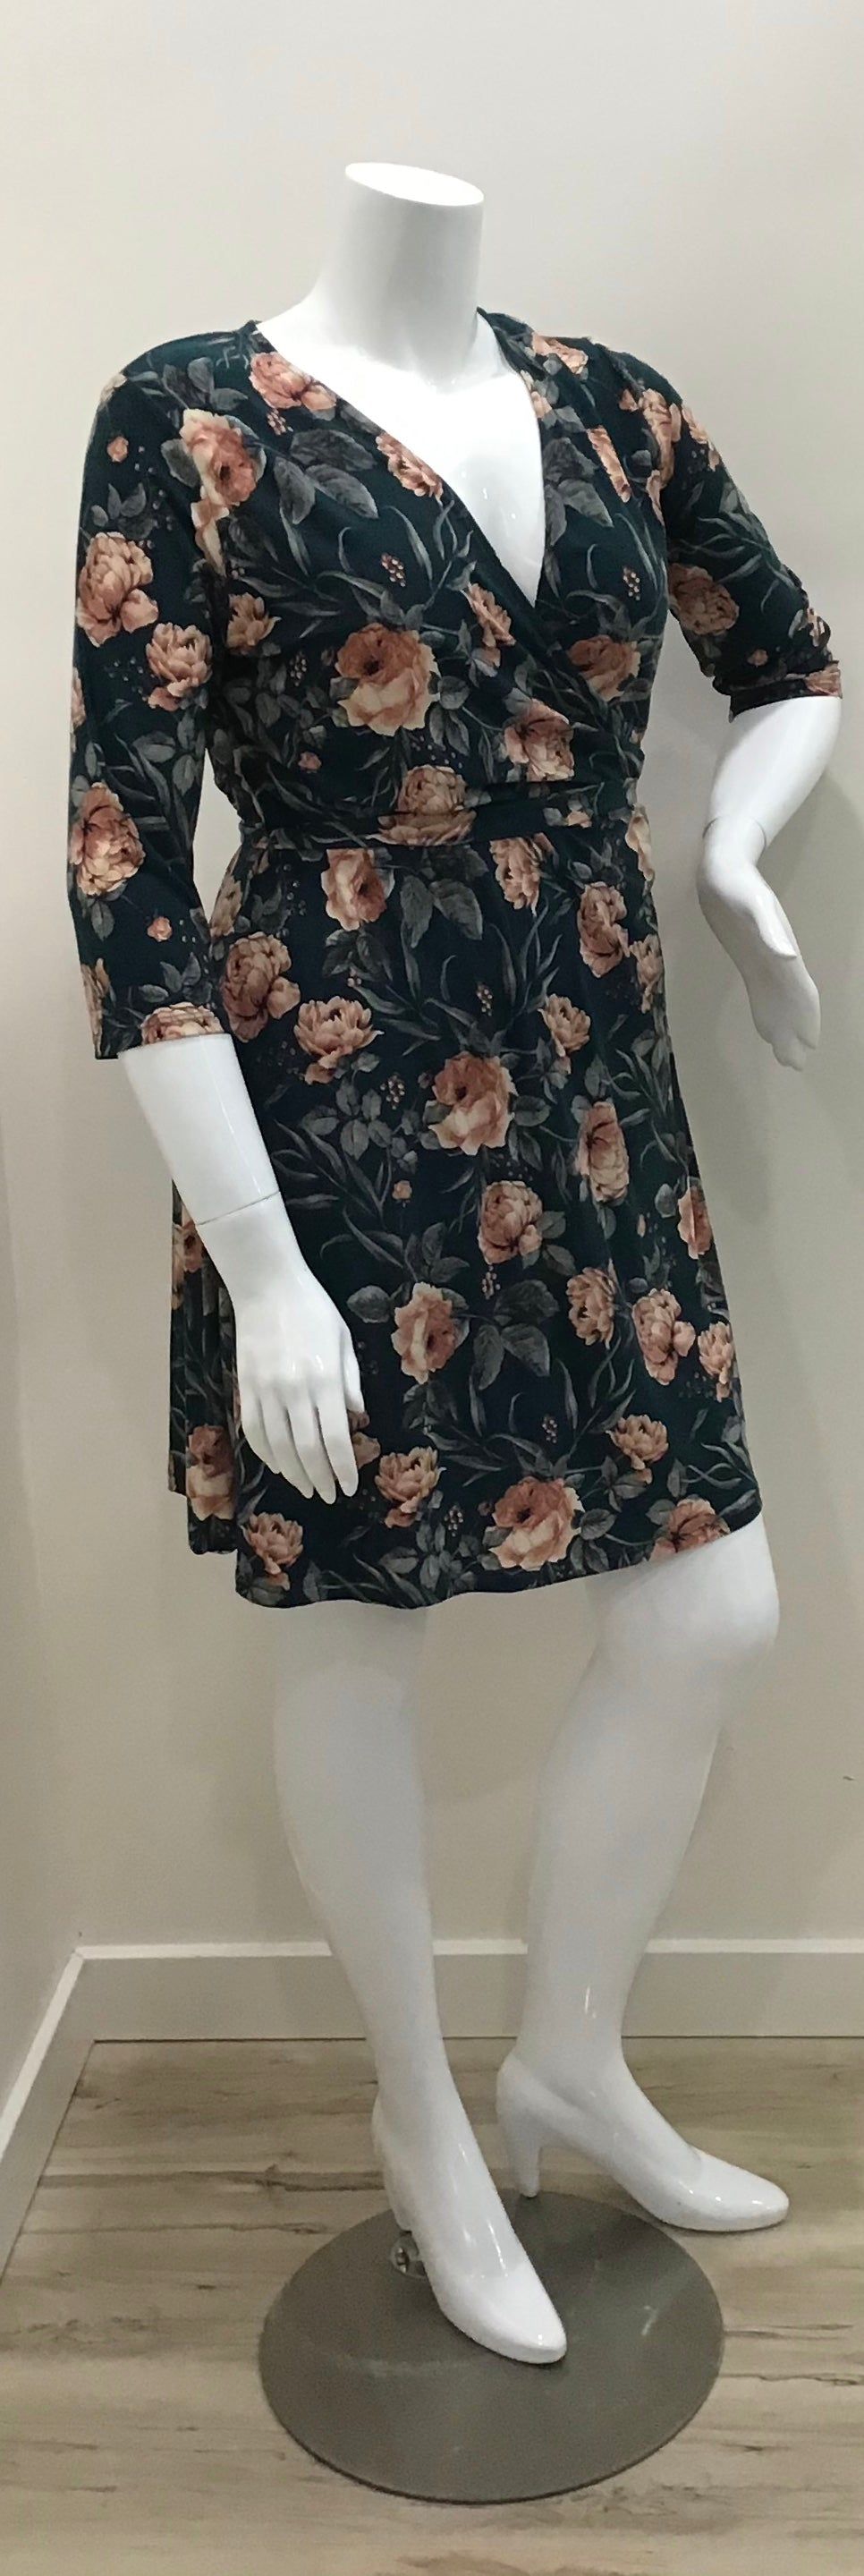 Floral 3/4 Sleeve Wrap Dress